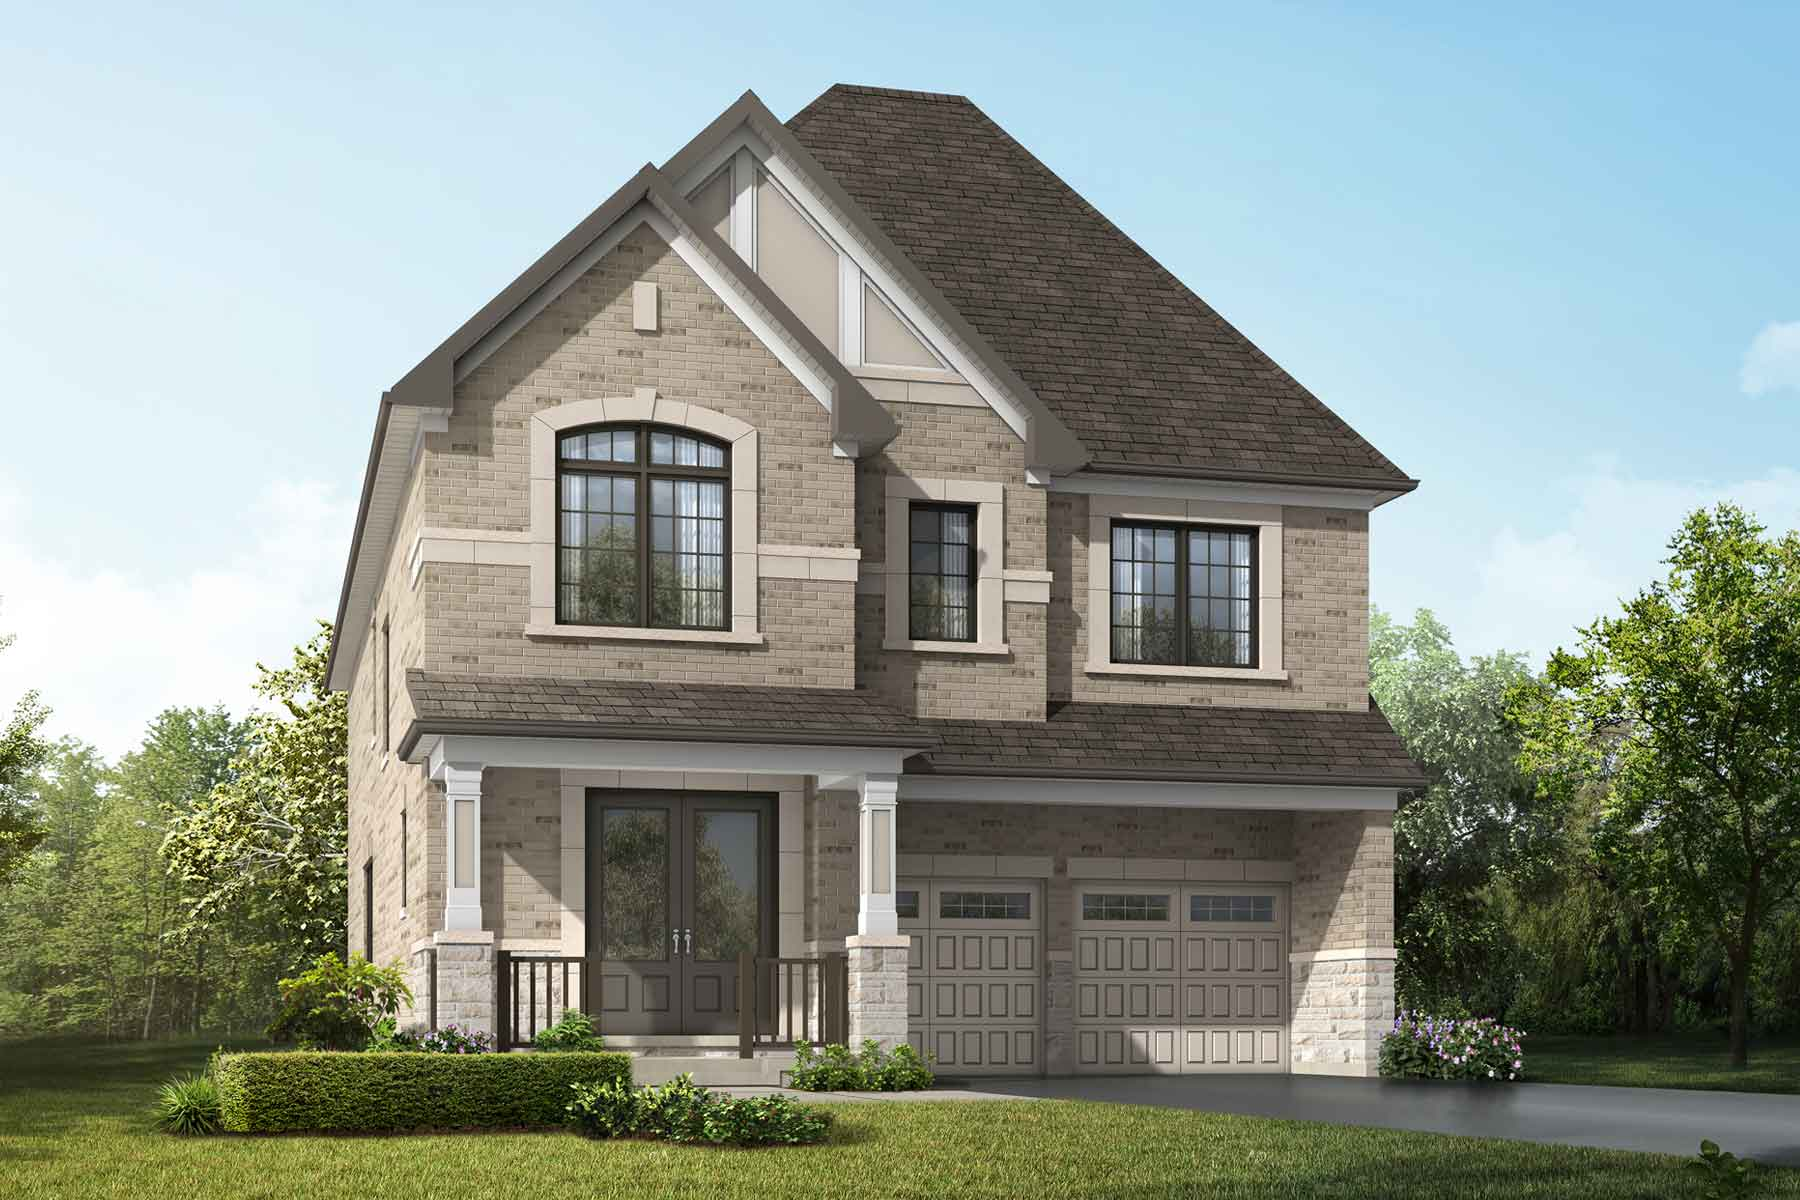 Violet Plan traditional_springwater_violet at Springwater in Markham Ontario by Mattamy Homes